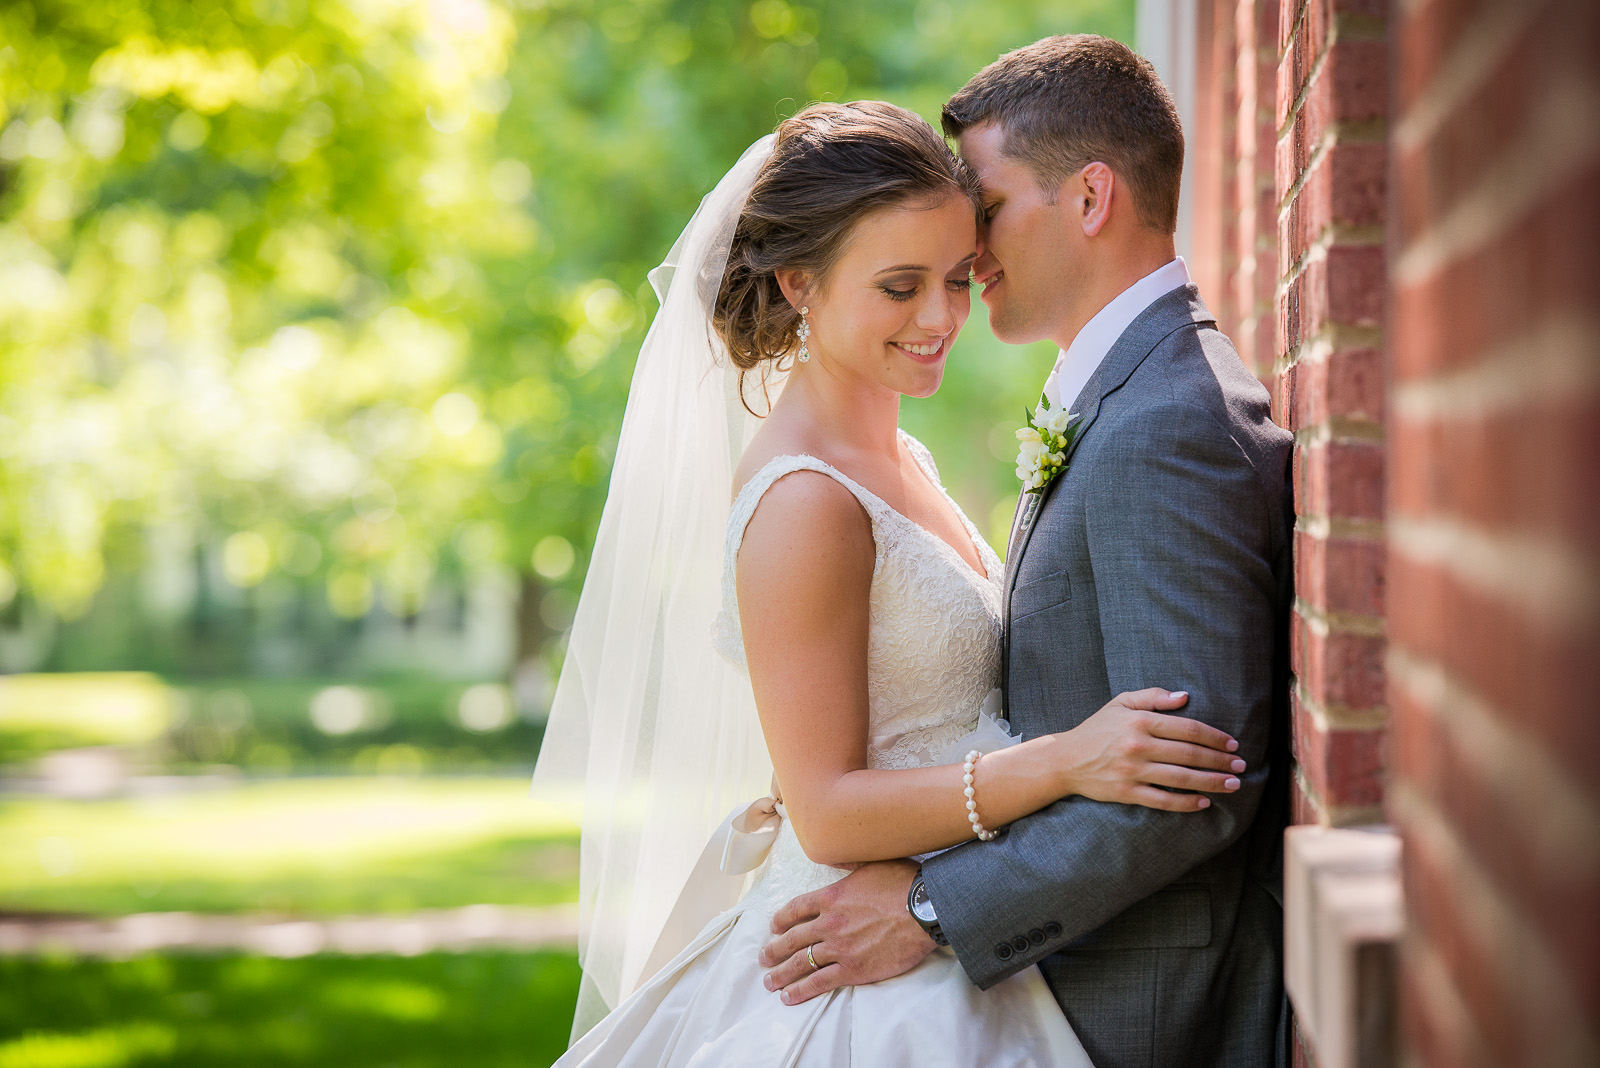 Eric_and_Christy_Photography_Blog_2016_Best_Wedding_Portraits-6